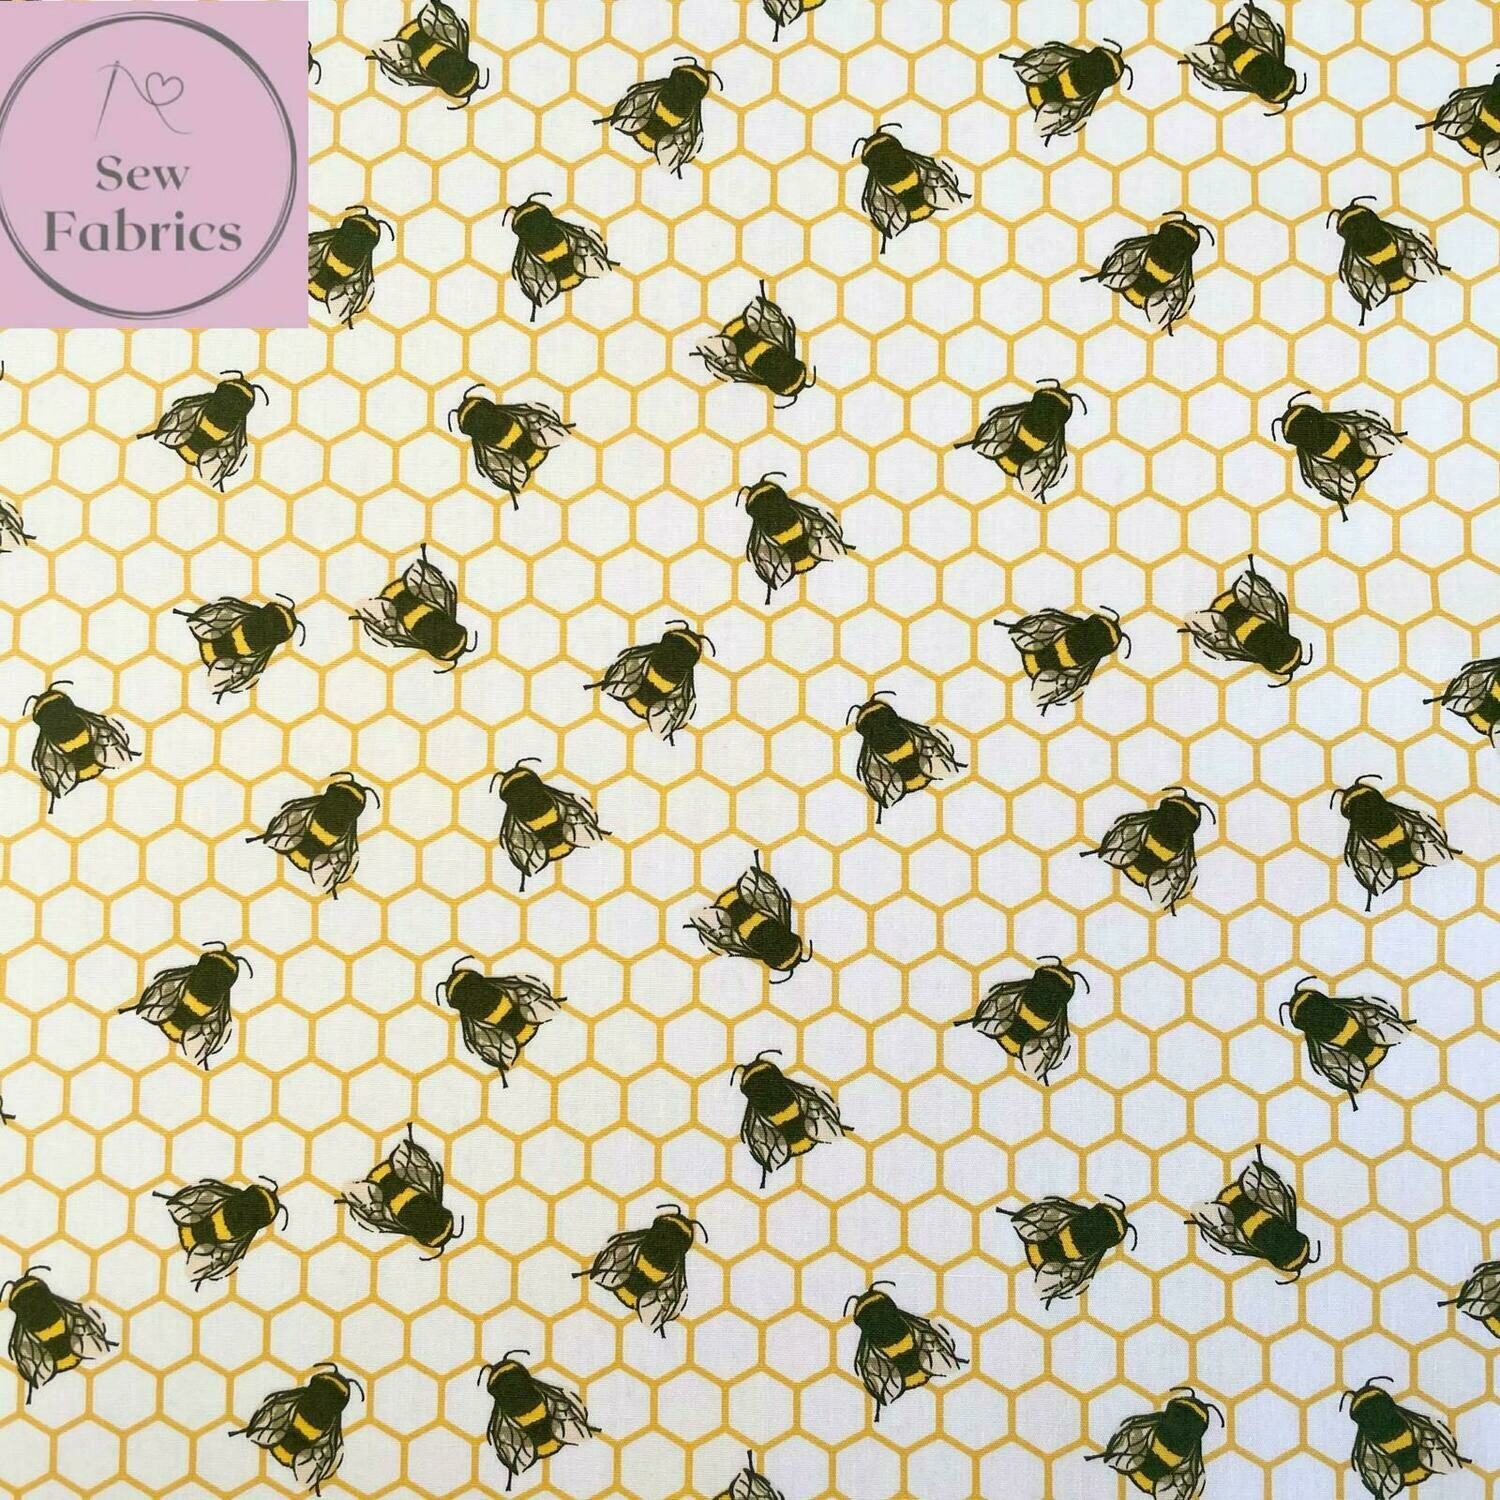 Rose and Hubble Ivory Bee Honeycomb Print Fabric 100% Cotton Poplin